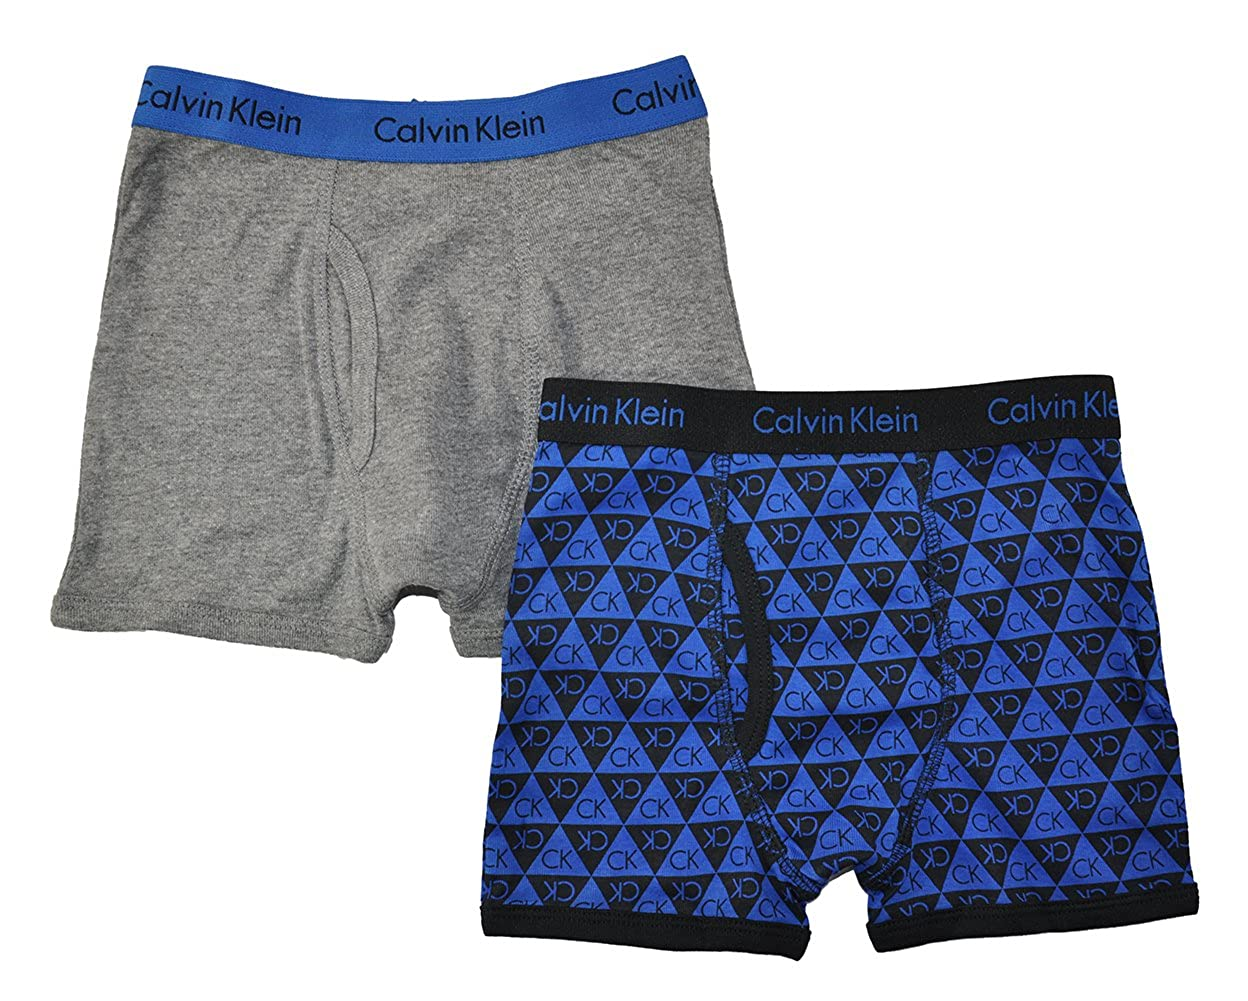 Calvin Klein Little/Big Boys' Assorted Boxer Briefs (Pack of 2) (X-Small / 4-5, Blue/Gray/Triangle) 37D67165